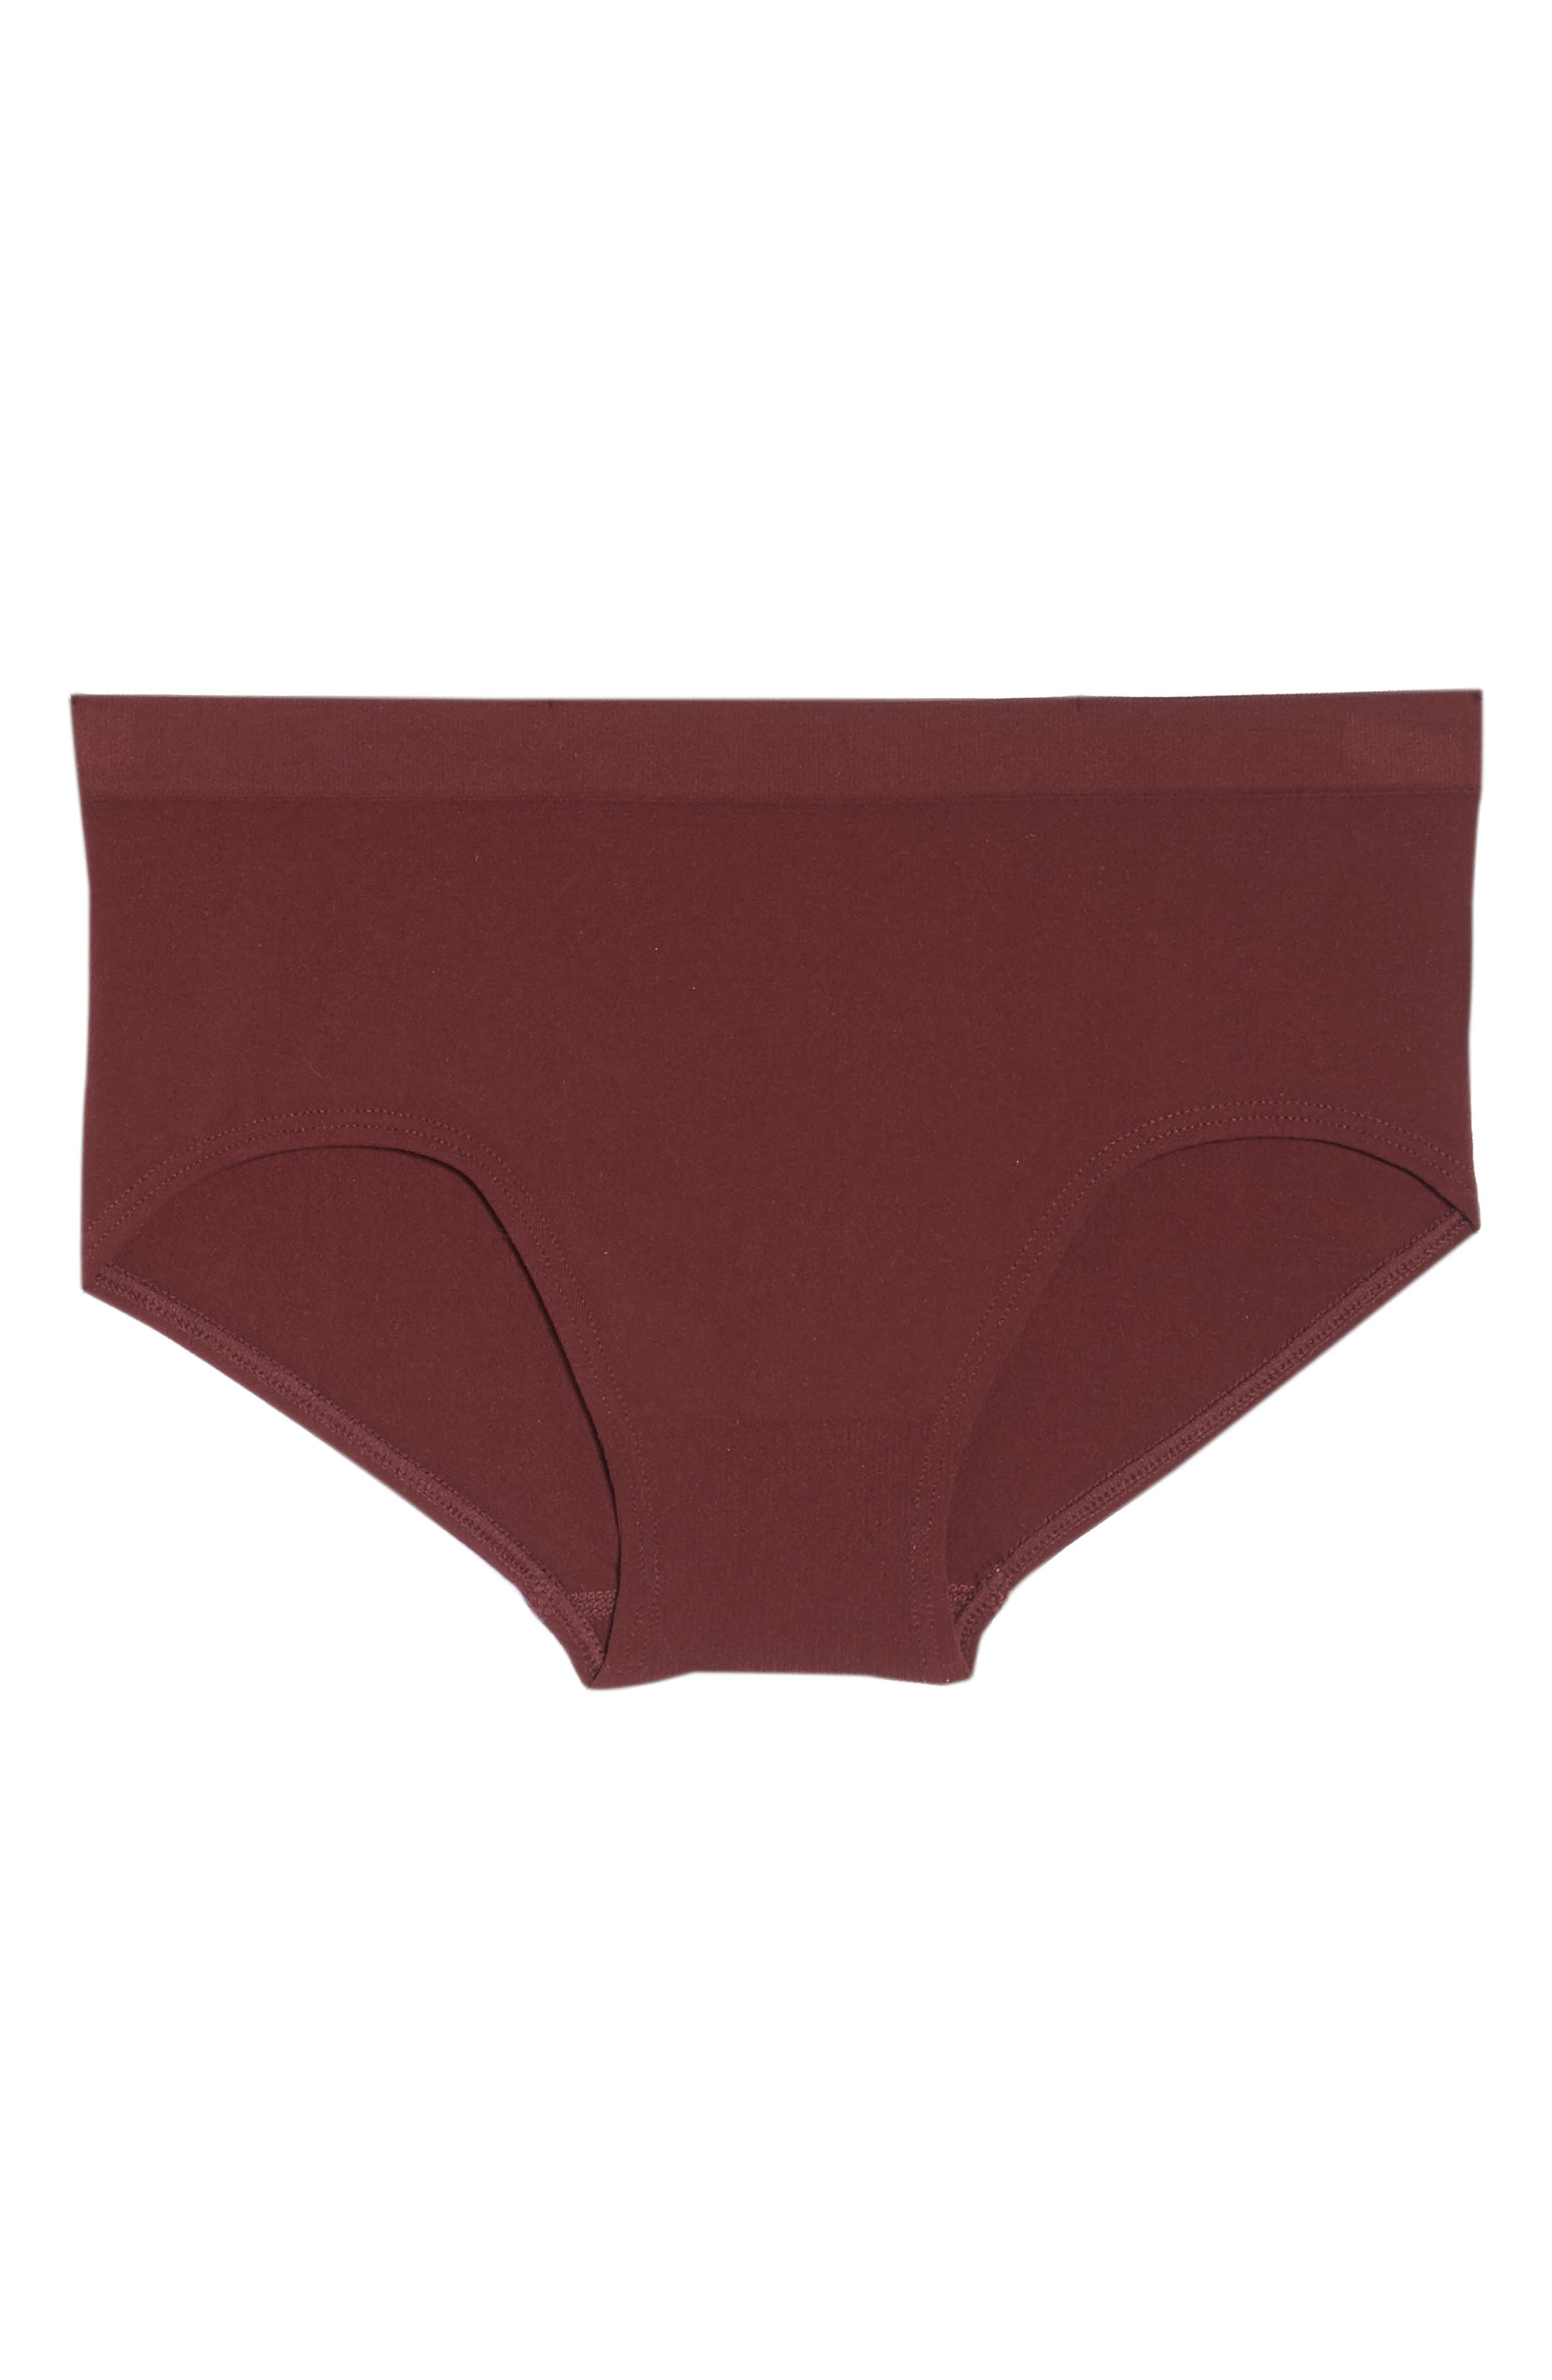 Seamless Hipster Briefs,                             Alternate thumbnail 7, color,                             Red Tannin